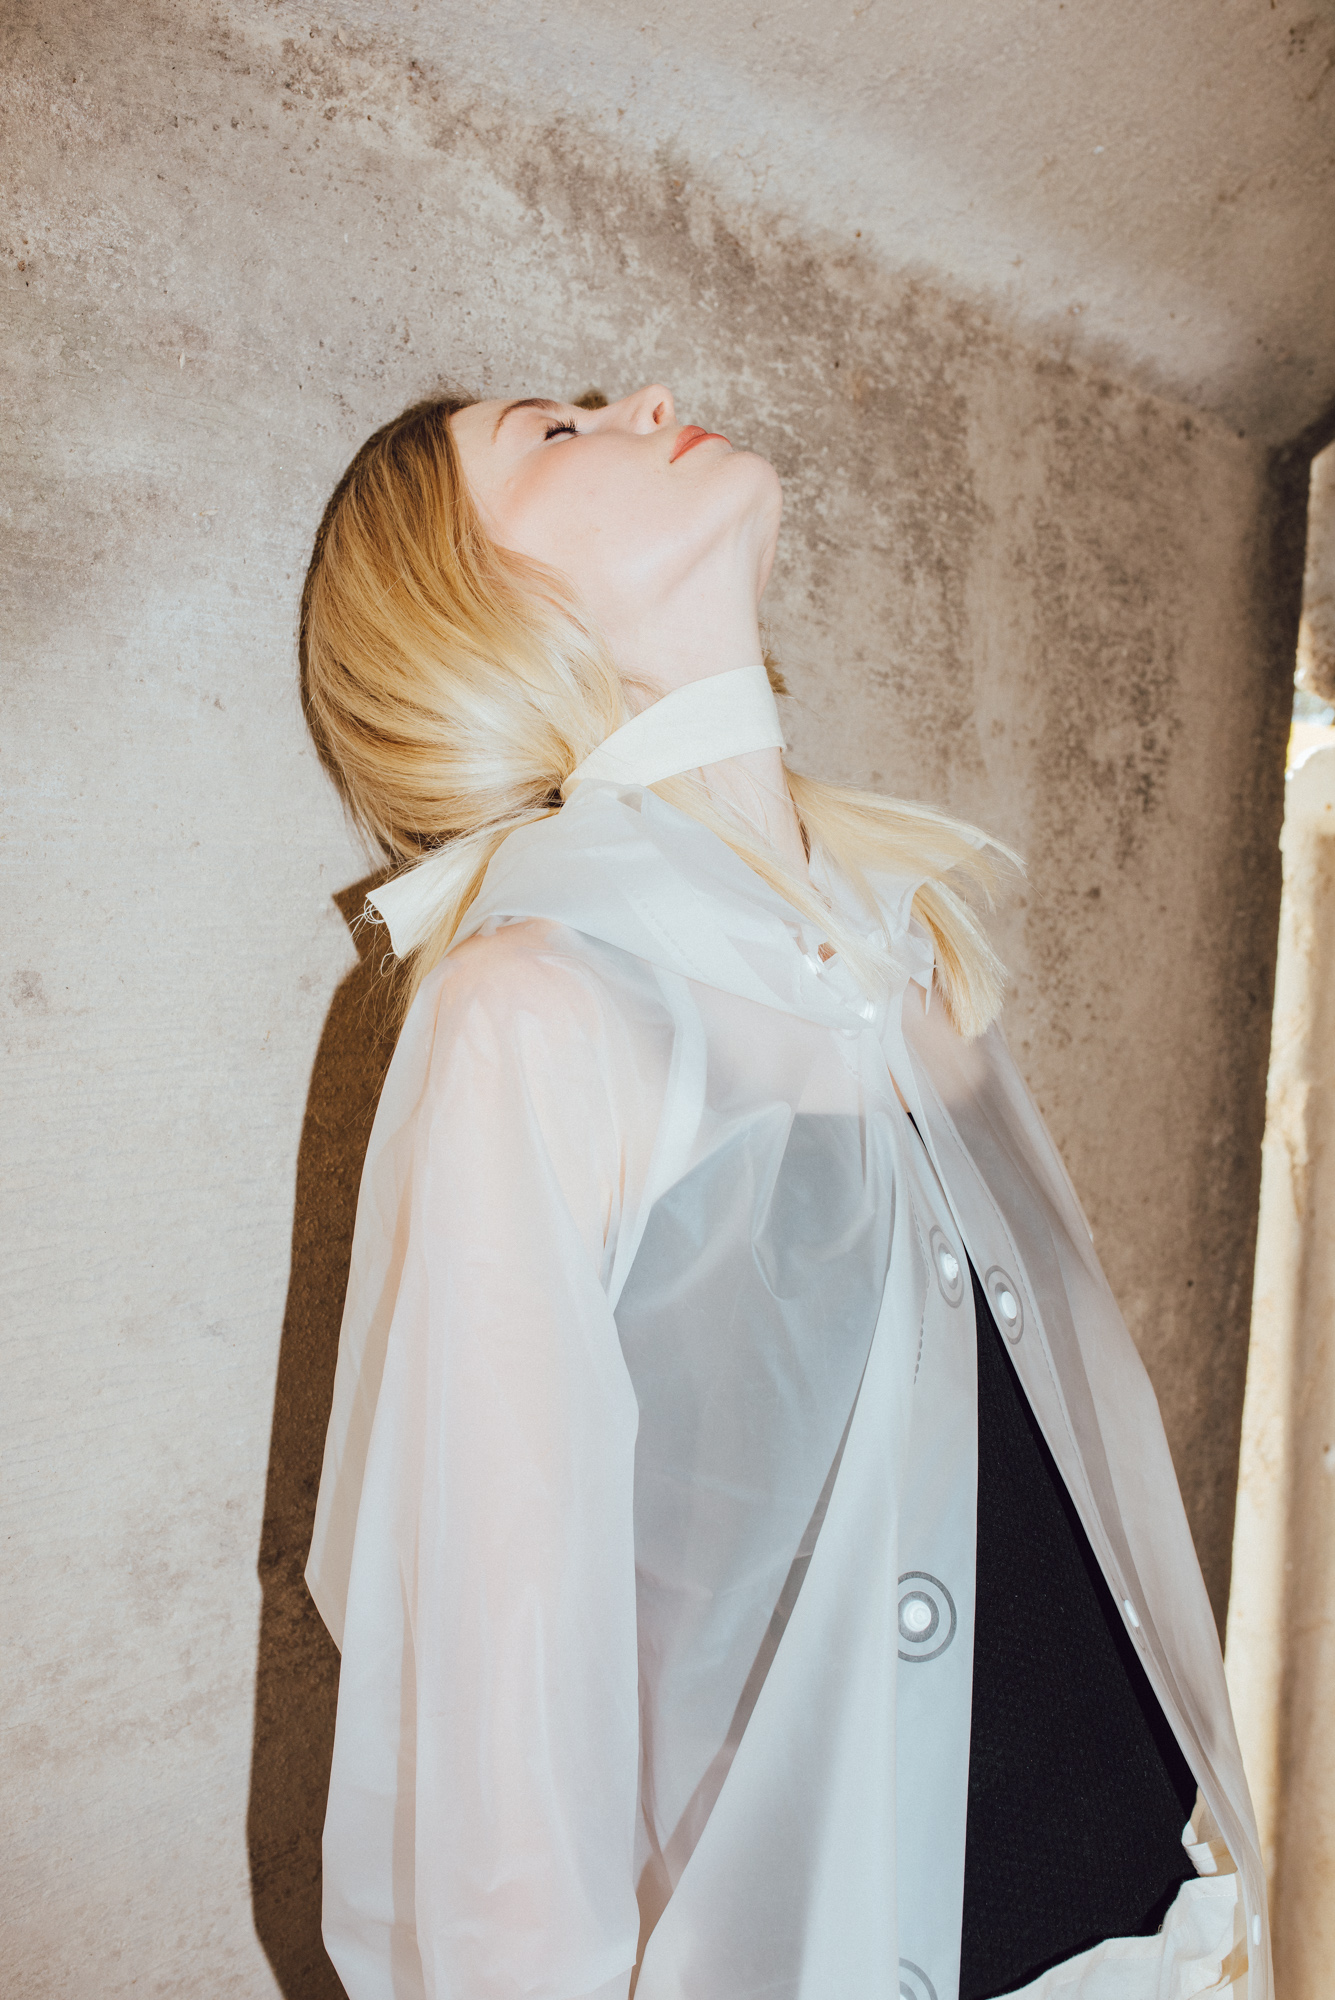 neck piece + body-suit + trousers  BEING APPAREL , raincoat MUJI